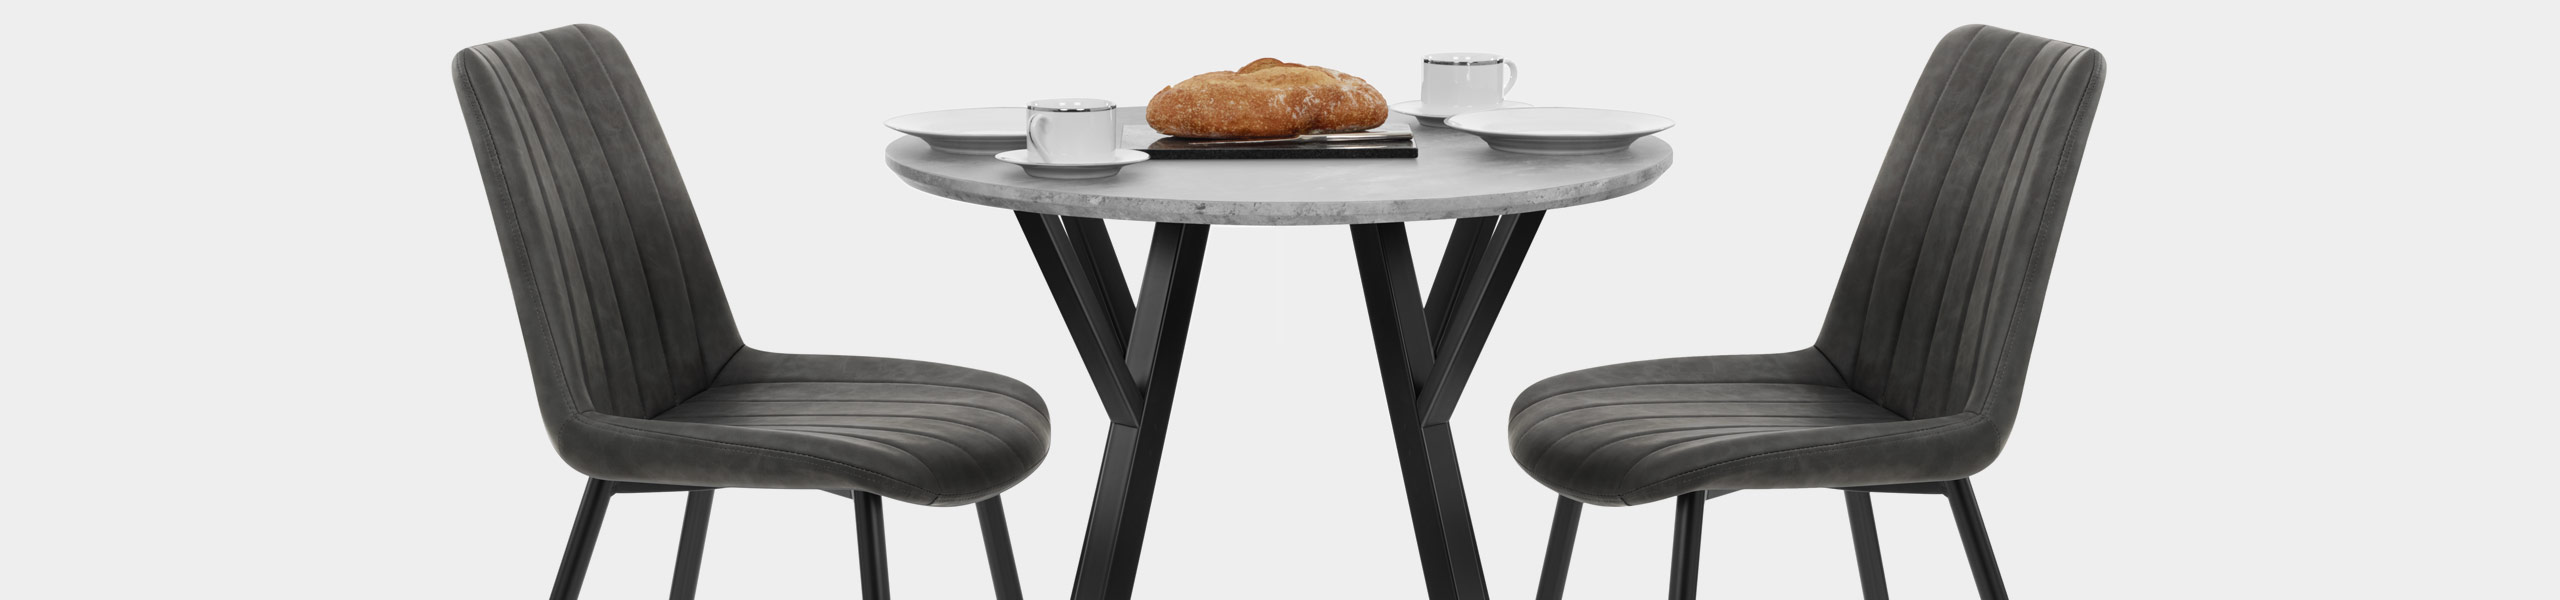 Wessex Dining Set Concrete & Charcoal Video Banner